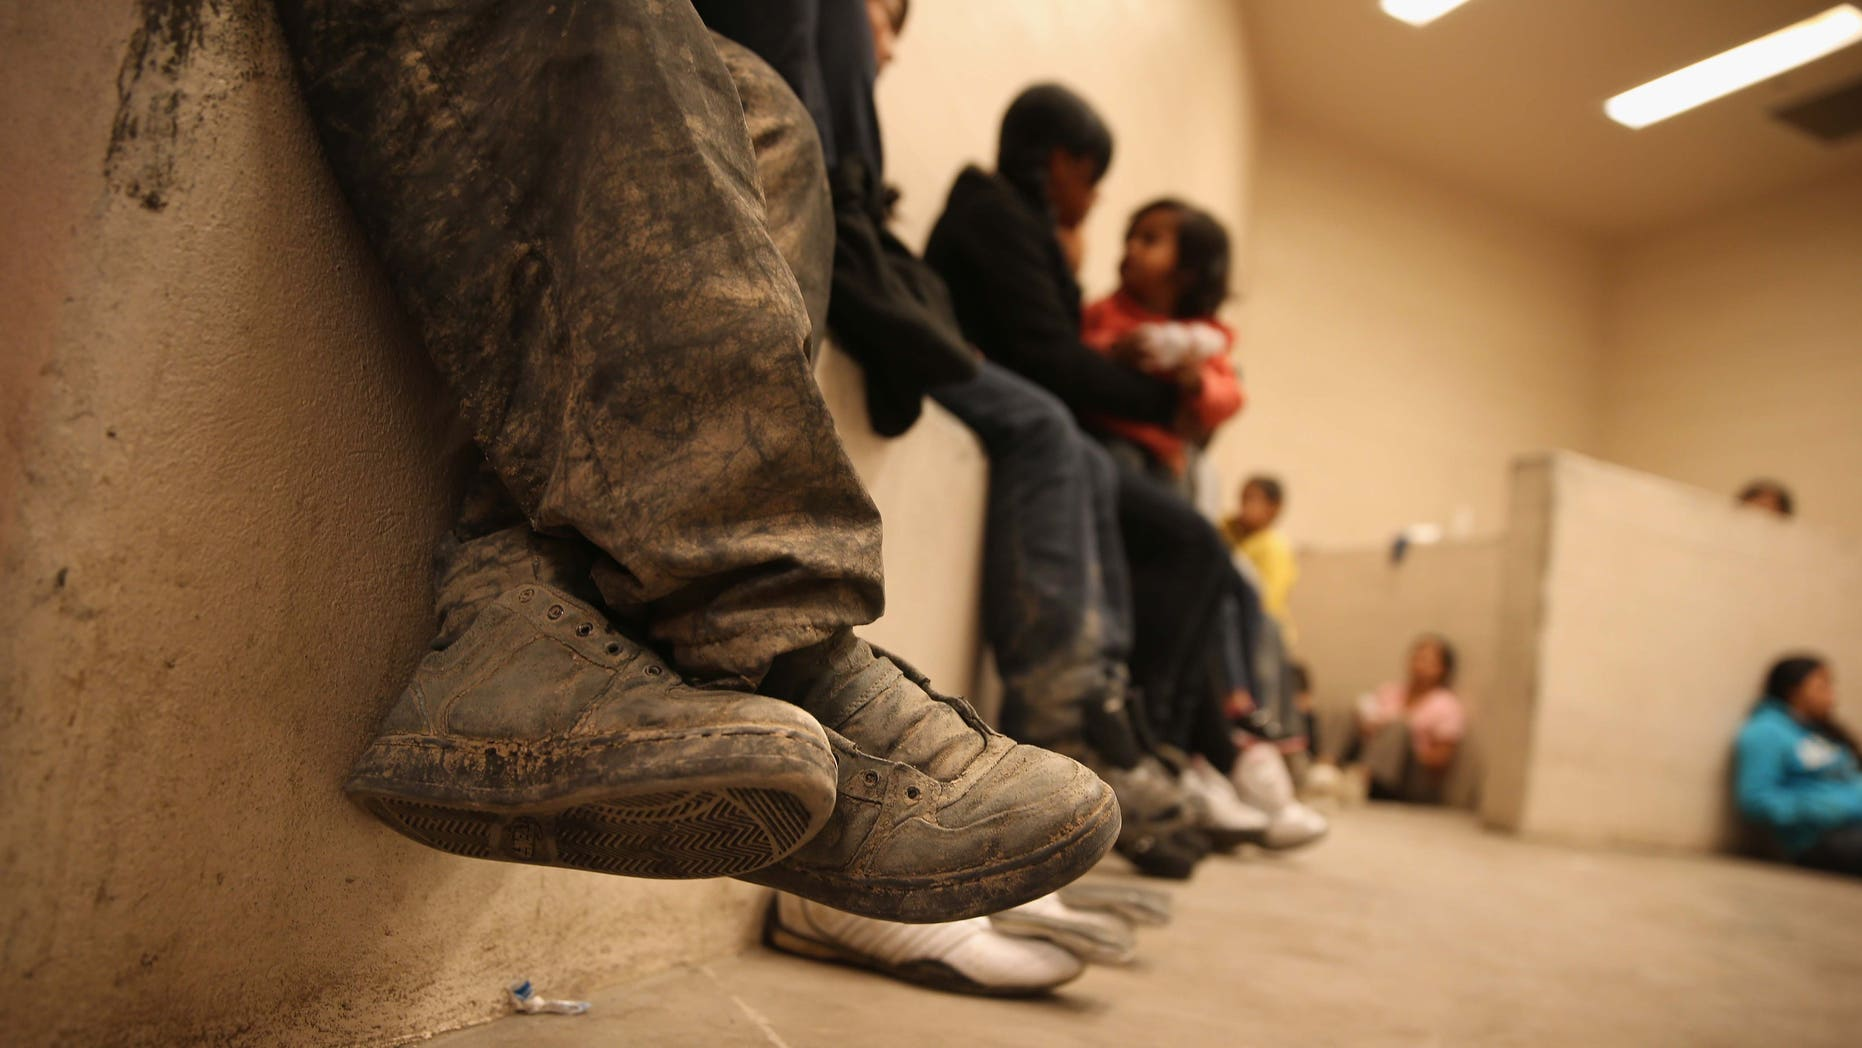 MCALLEN, TX - SEPTEMBER 08:  Women and children sit in a holding cell at a U.S. Border Patrol processing center after being detained by agents near the U.S.-Mexico border on September 8, 2014 near McAllen, Texas. Thousands of immigrants, many of them families and unaccompanied minors, continue to cross illegally into the United States, although the numbers are down from a springtime high. Texas' Rio Grande Valley area is the busiest sector for illegal border crossings into the United States.  (Photo by John Moore/Getty Images)